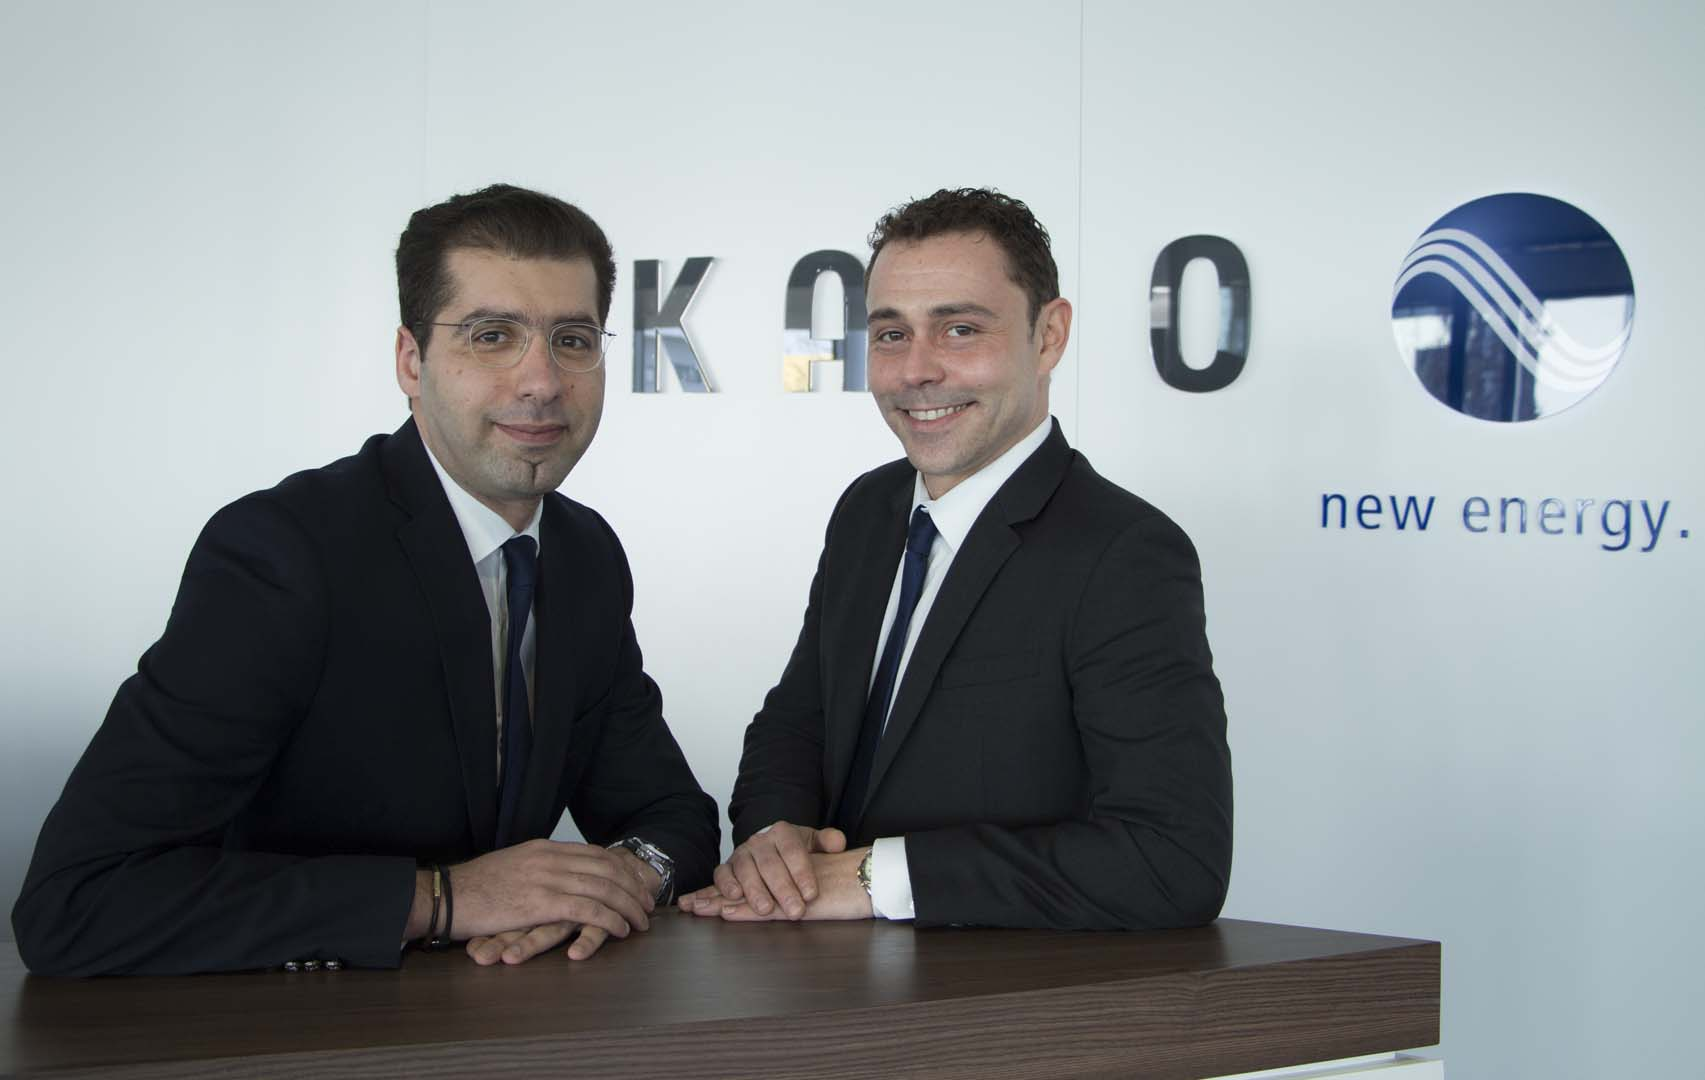 KACO new energy welcomes new sales specialists: Boualem Benelfoul and Philipp Leclerc. Source: KACO New Energy